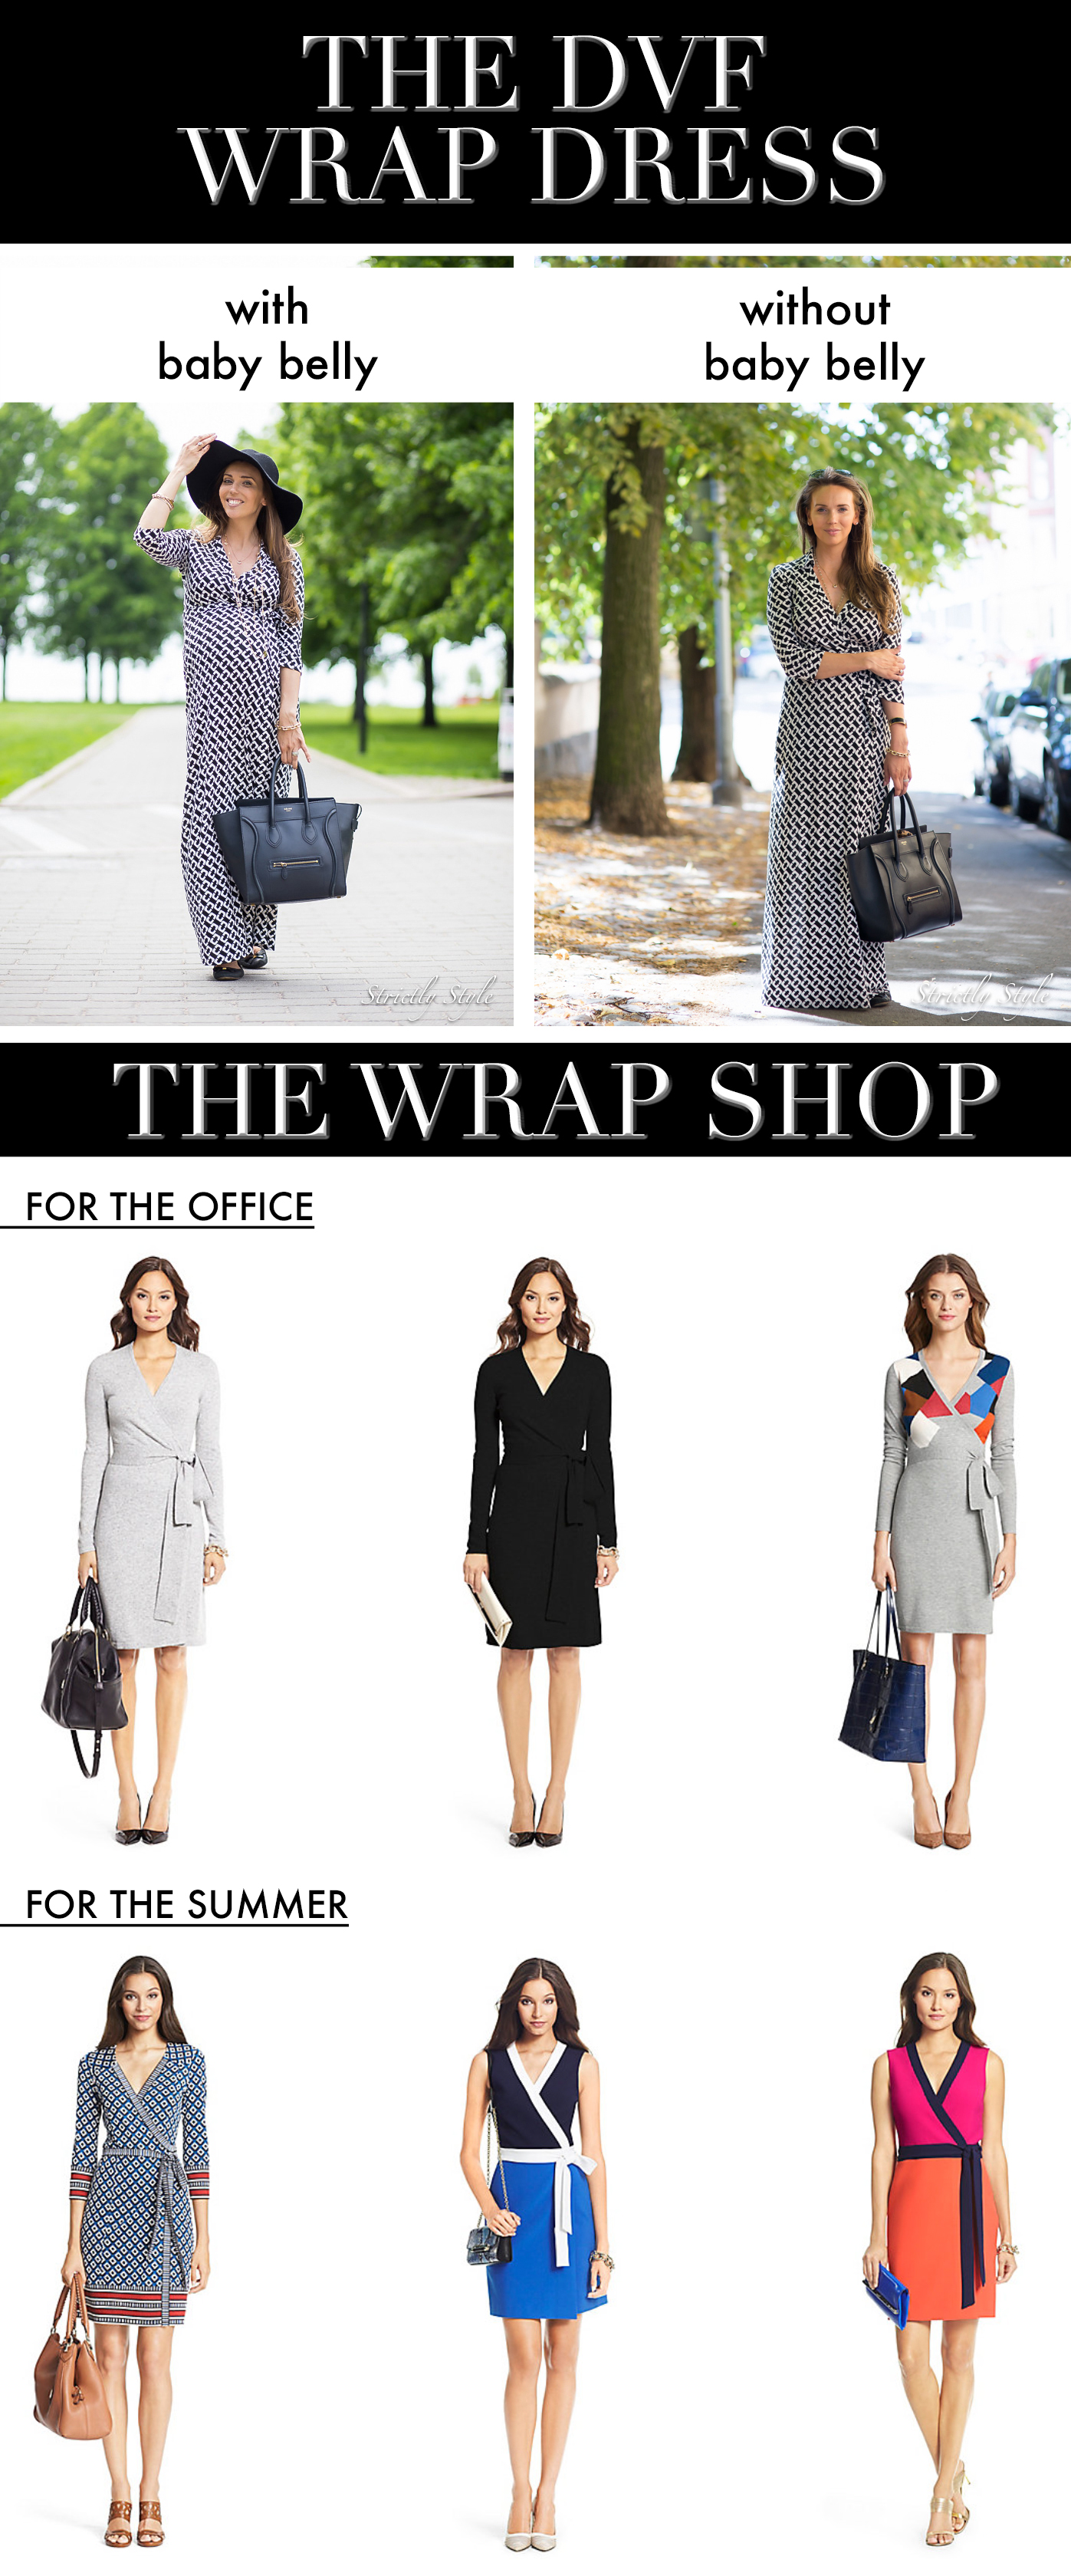 THEDVFWRAP